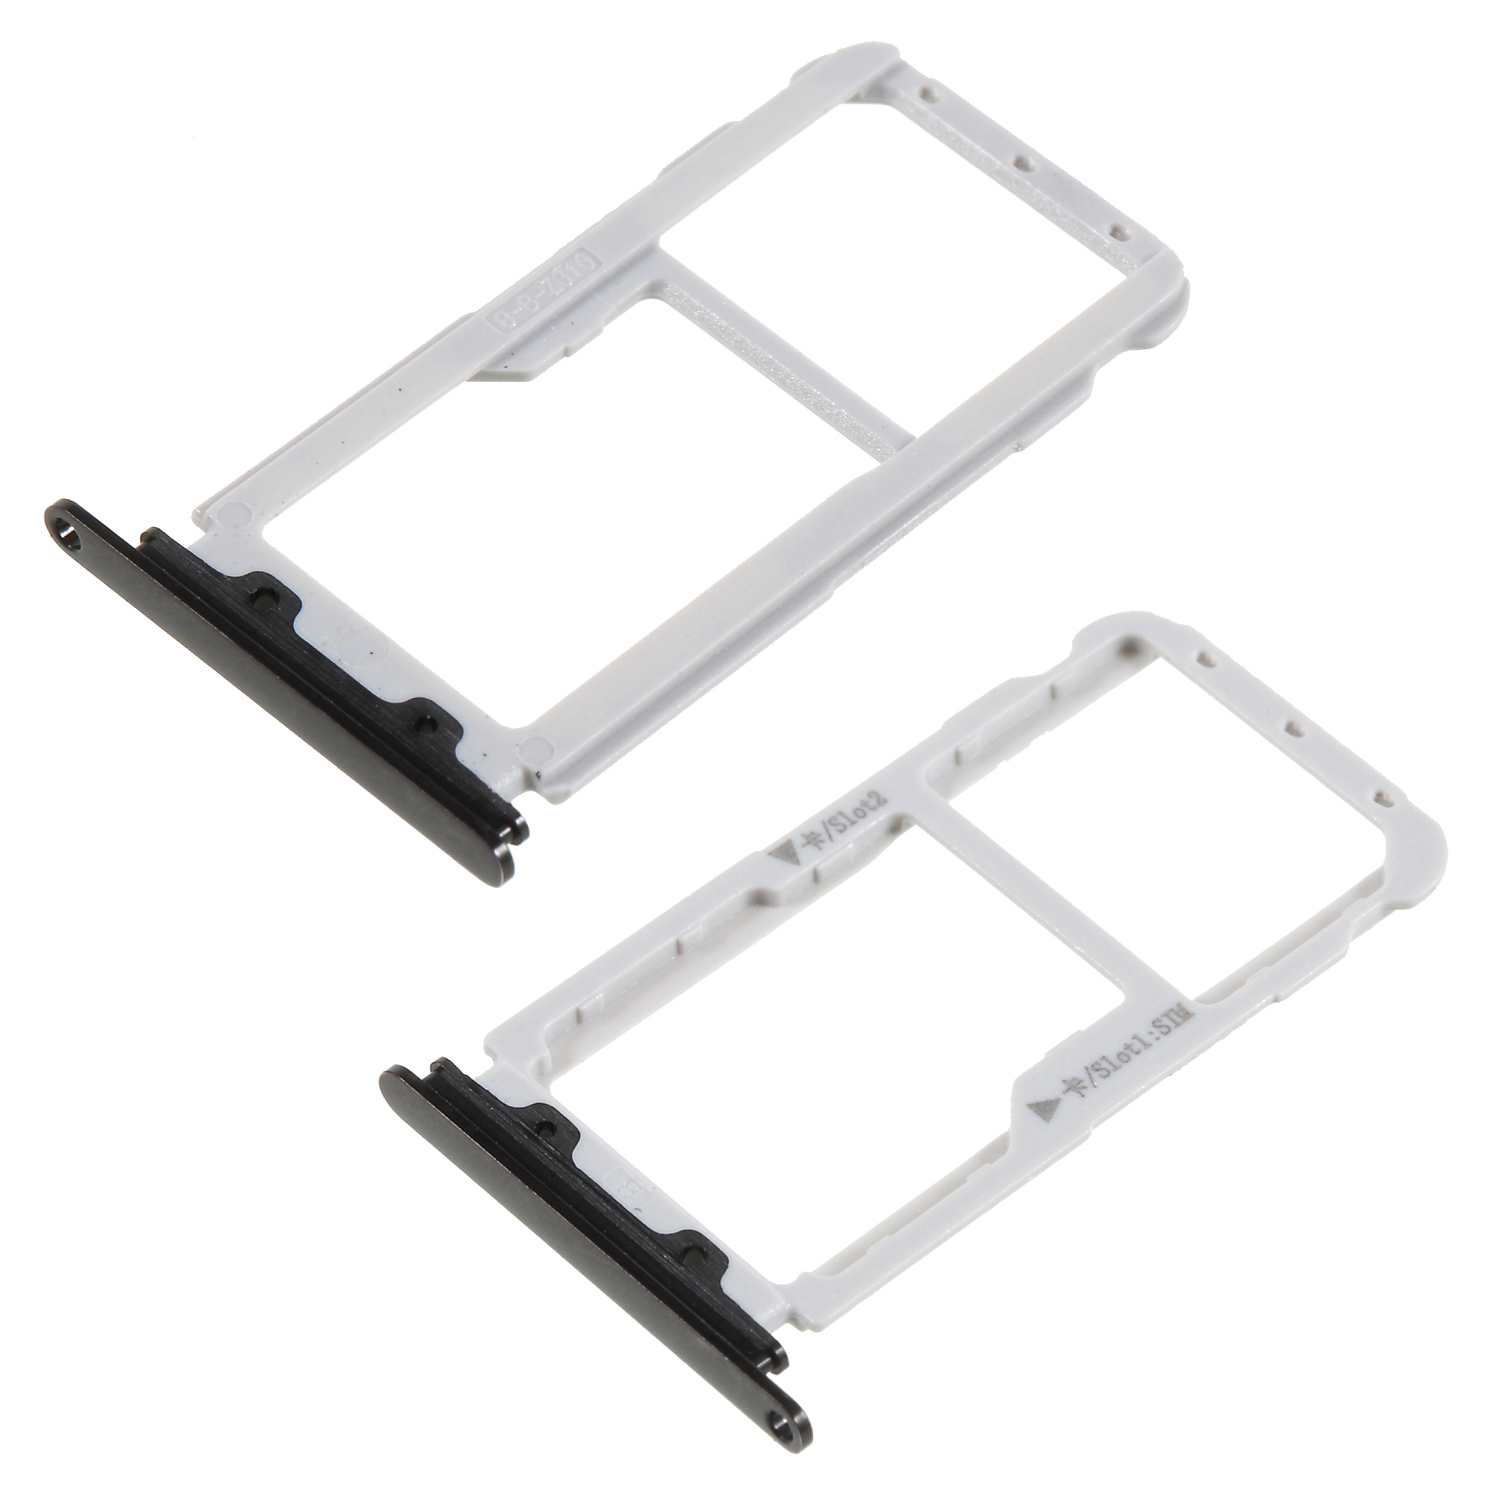 DULCII OEM Dual SIM MicroSD Card Tray Slot Holder for Huawei nova 2 plus